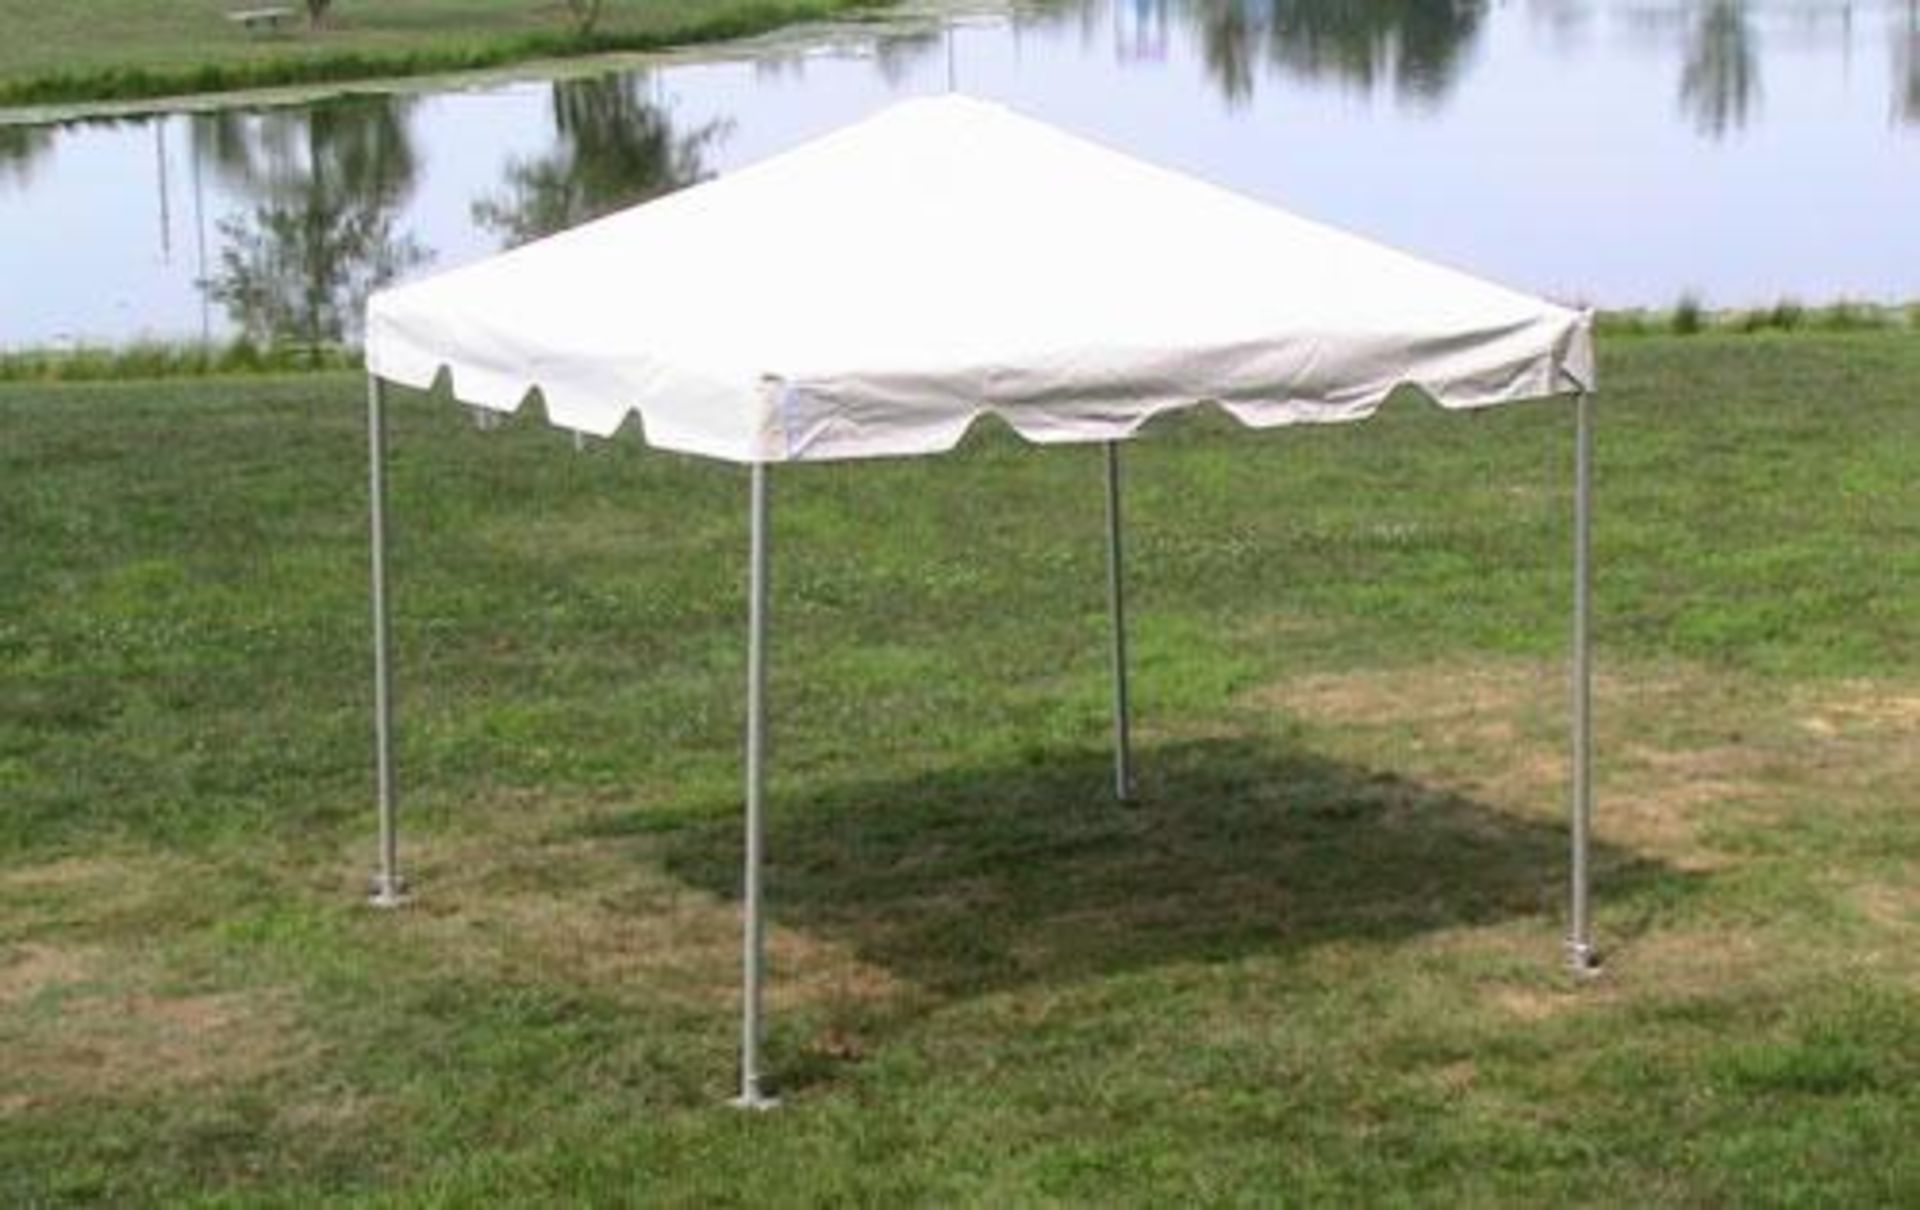 Lot 51 - 10 ft. x 10 ft. Frame Tents - Complete(sidewalls and rain gutters lots available)